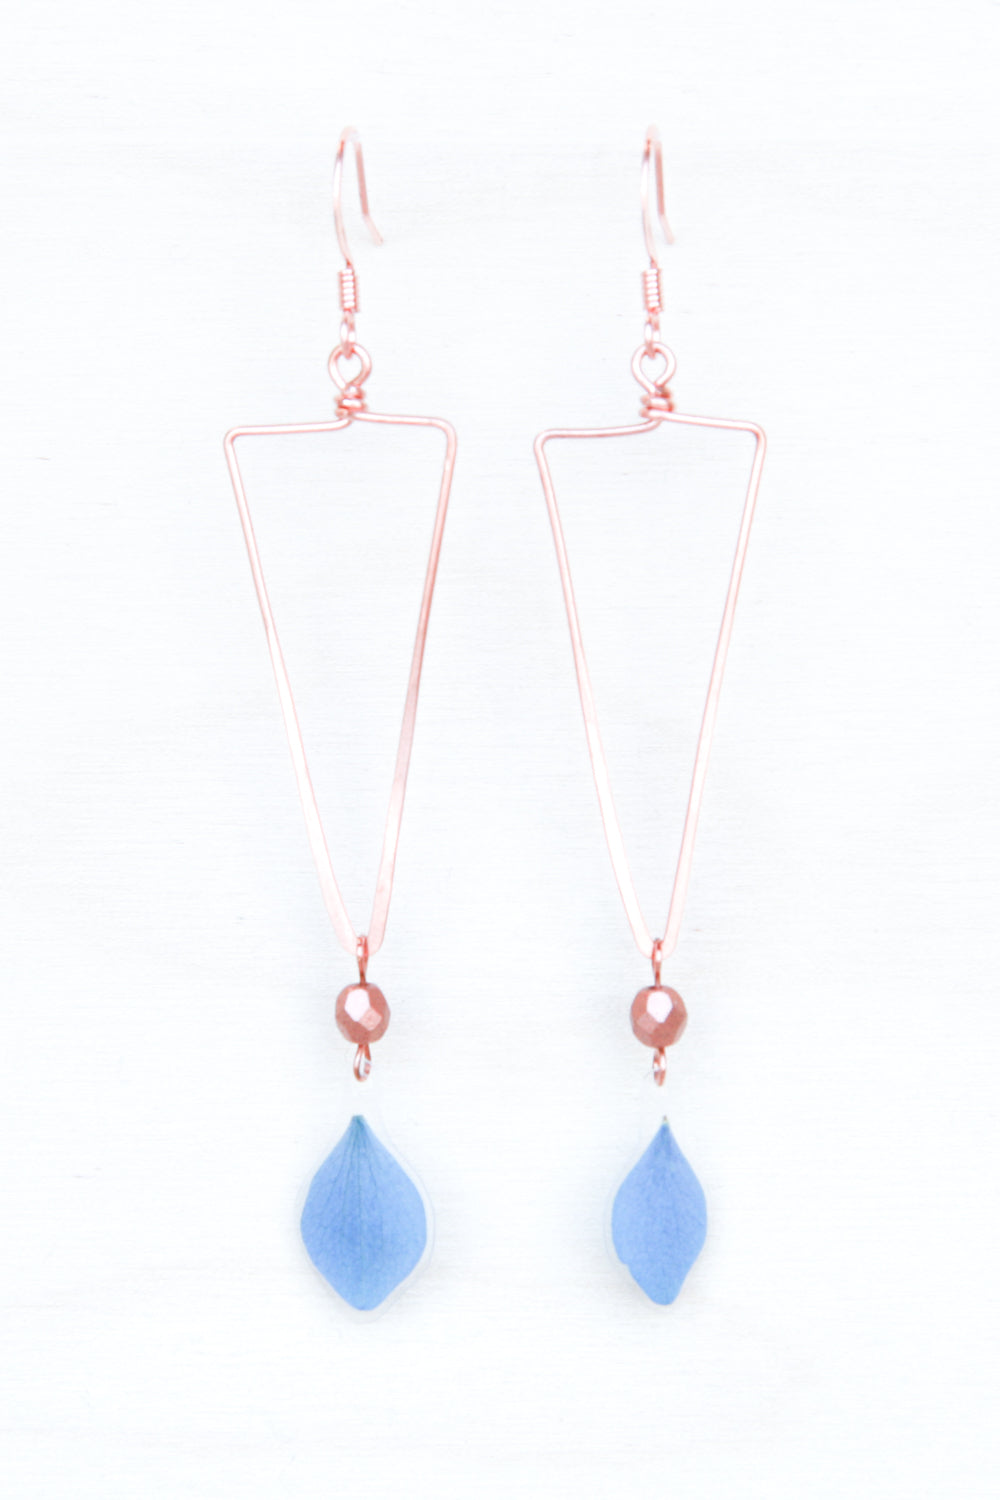 Blue Hydrangea Triangle Hoop Earrings with Copper Beads